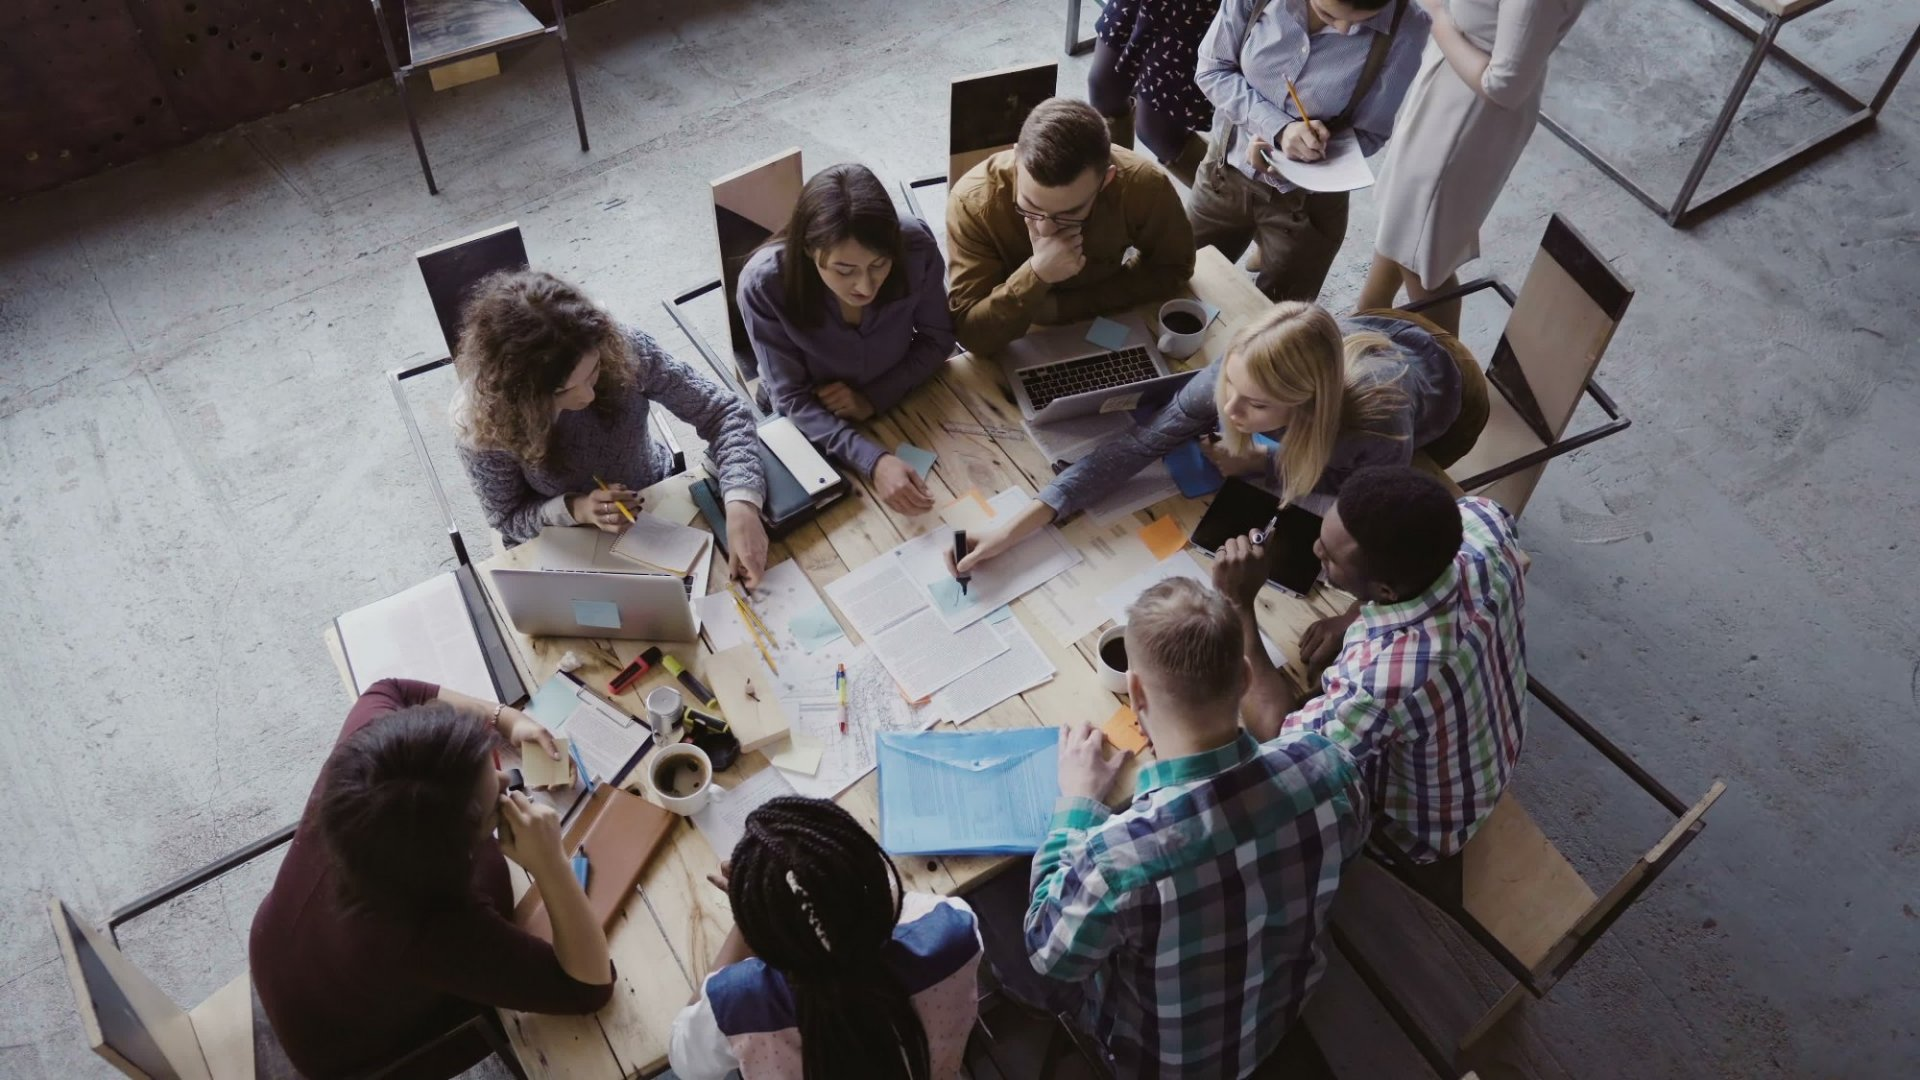 5 Ways to Increase Transparency to Gain Employee Trust